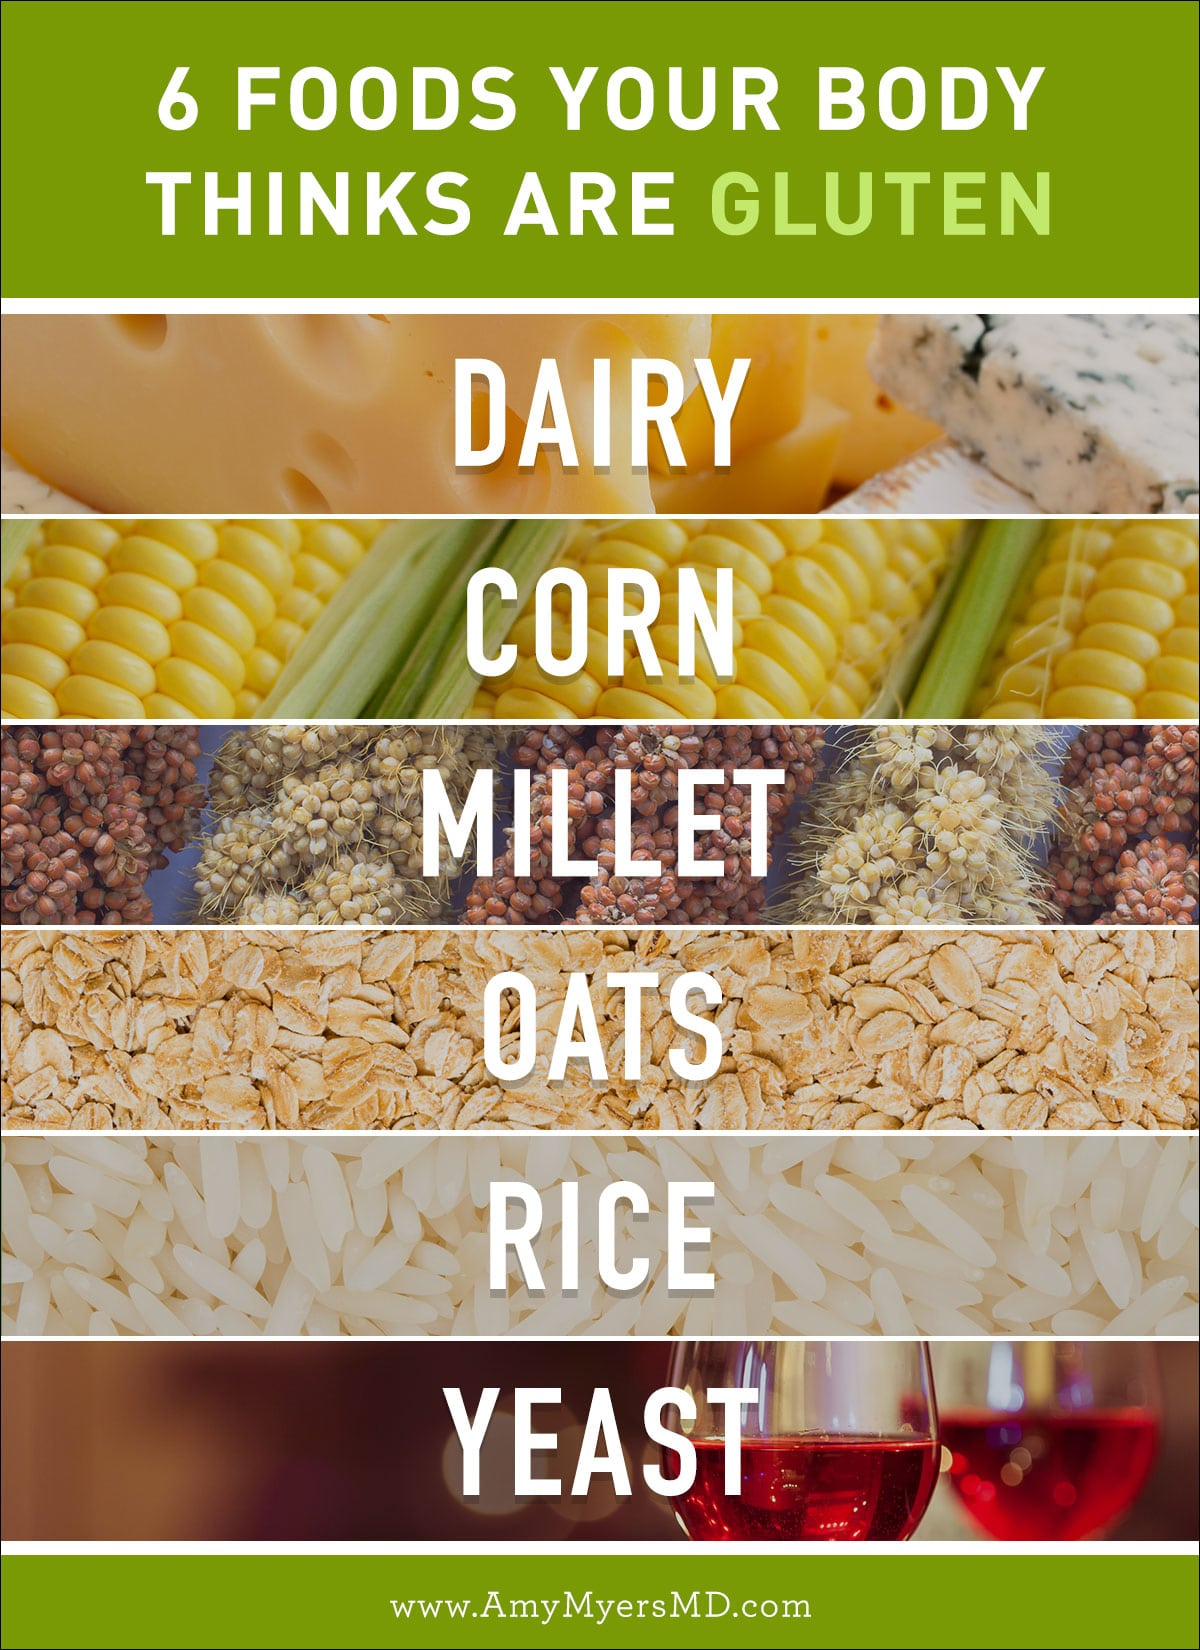 6 Foods Your Body Thinks Are Gluten, or Gluten Cross-Reaction - Infographic - Amy Myers MD